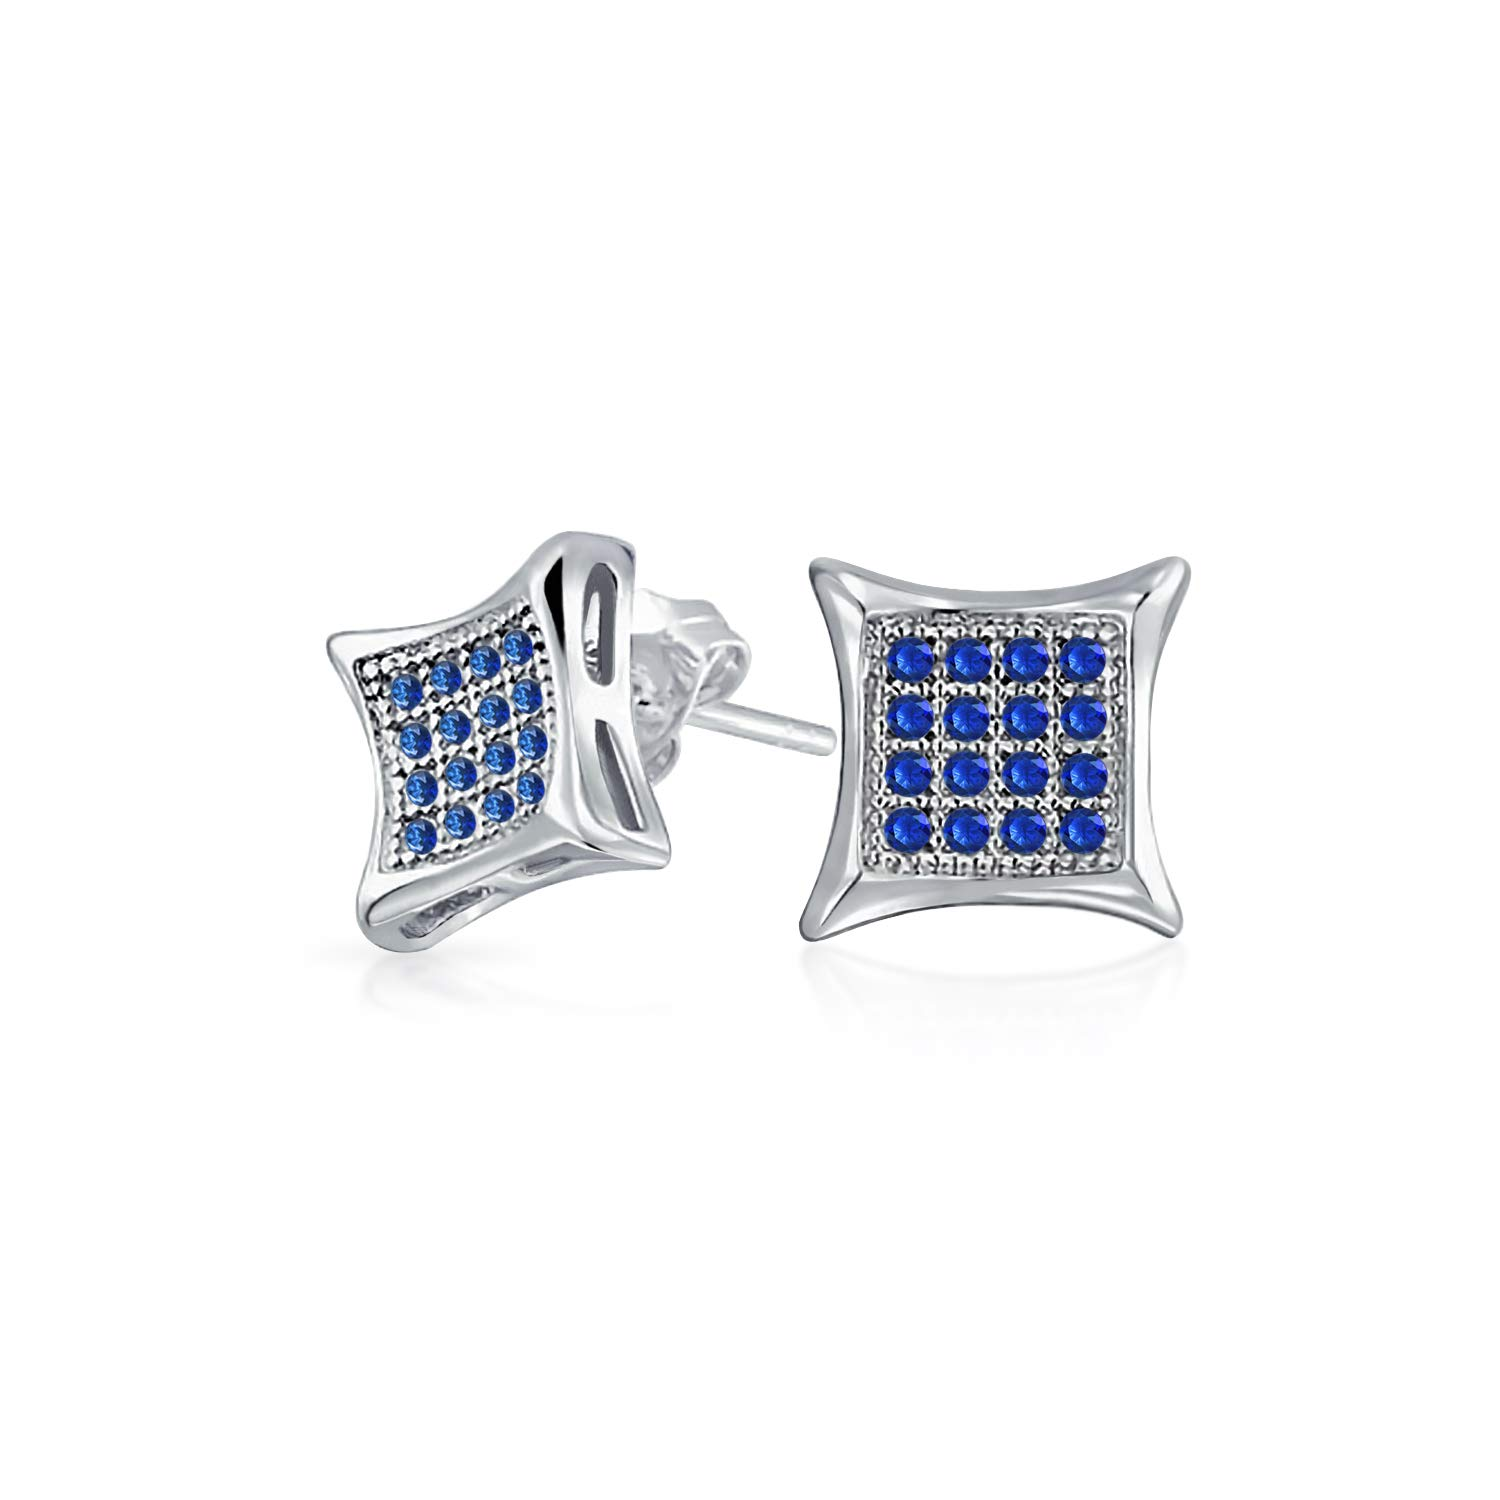 a0b61e9d1 Amazon.com: Mens Womens Square Shaped Cubic Zirconia Micro Pave Blue  Simulated Sapphire Kite Stud Earrings 925 Sterling Silver 7MM: Jewelry